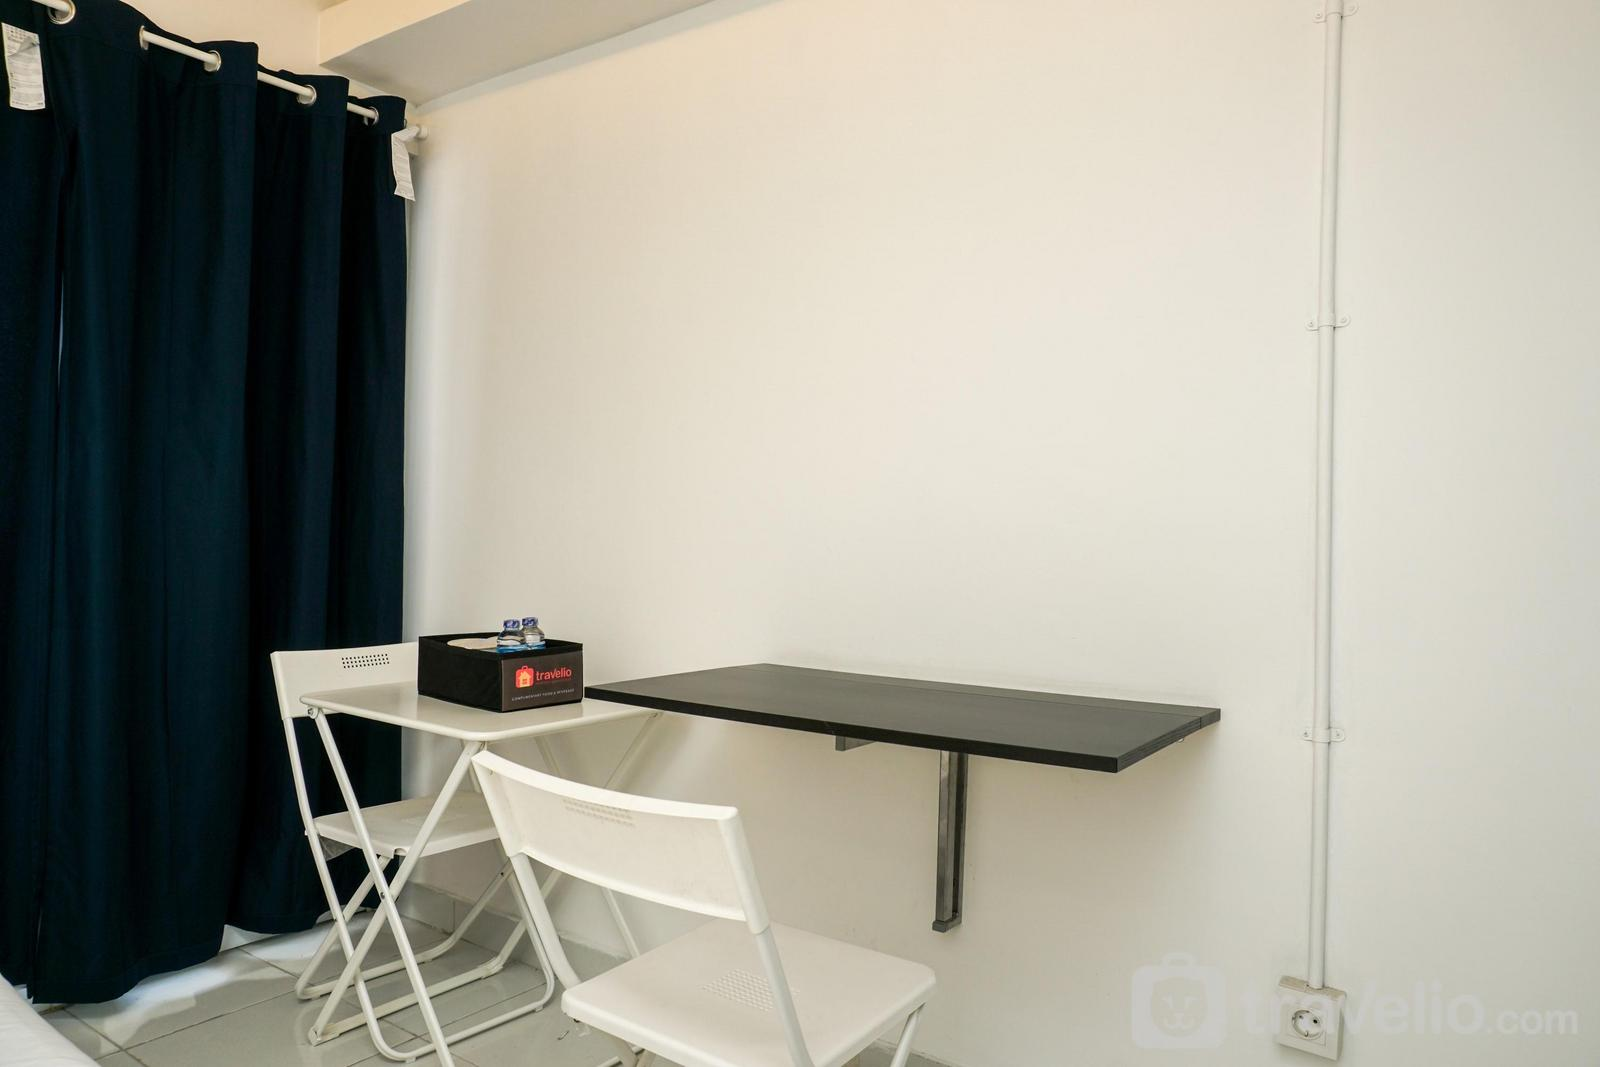 Amethyst Apartment - Simply White and Compact Studio at Amethyst Apartment By Travelio